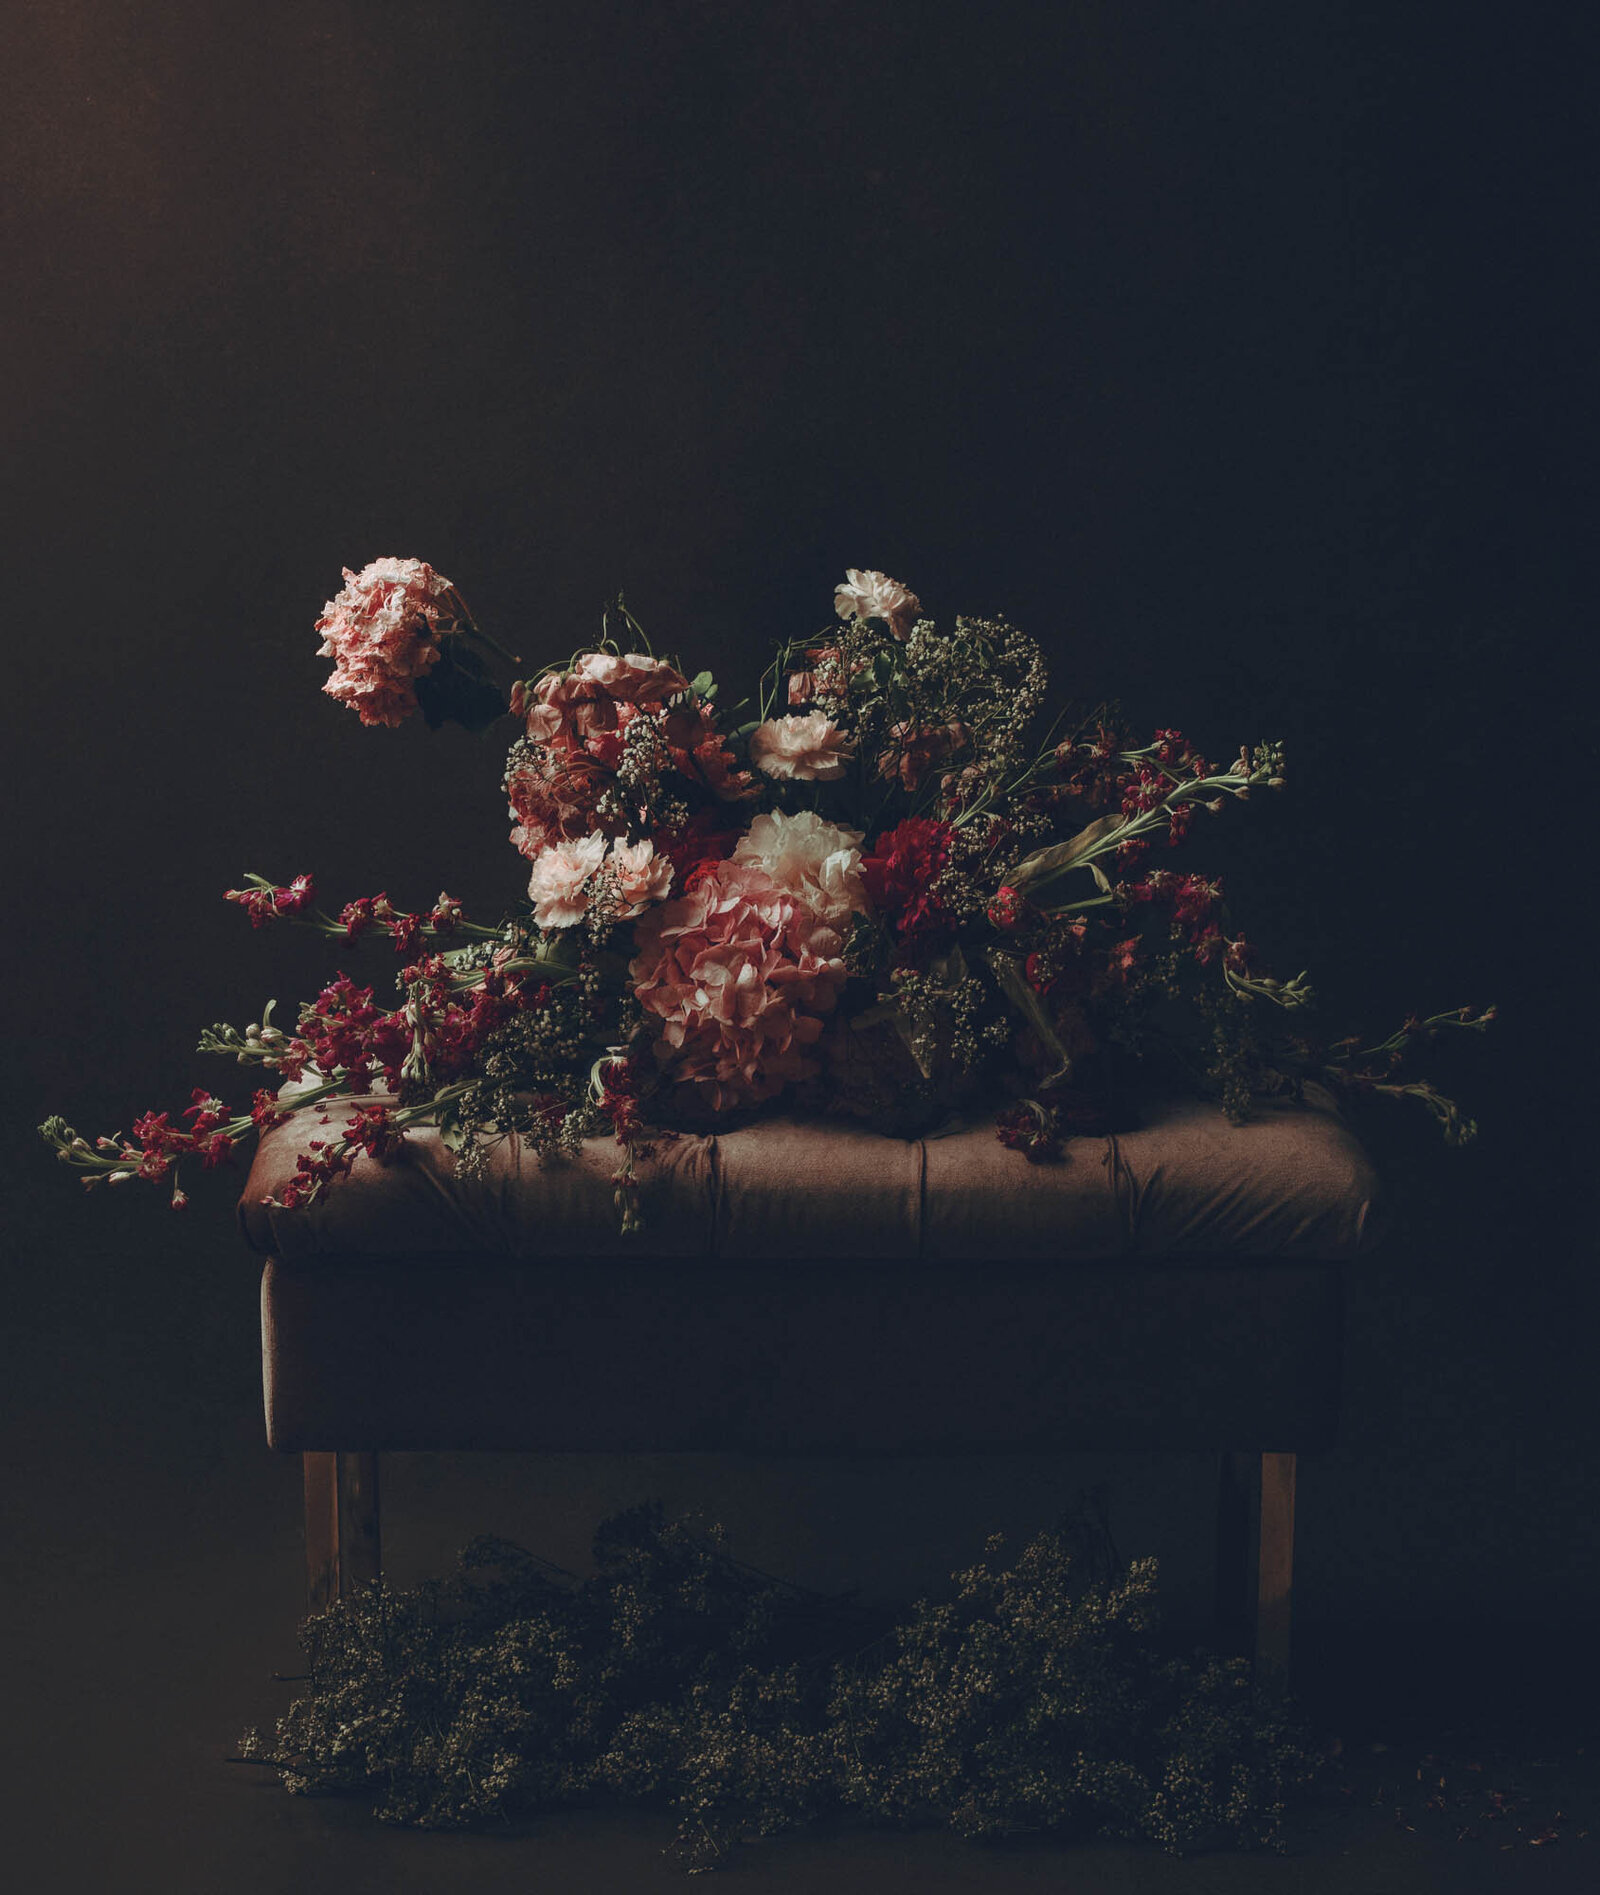 Artful picture of a bouquet  of flowers on a leather sofa.